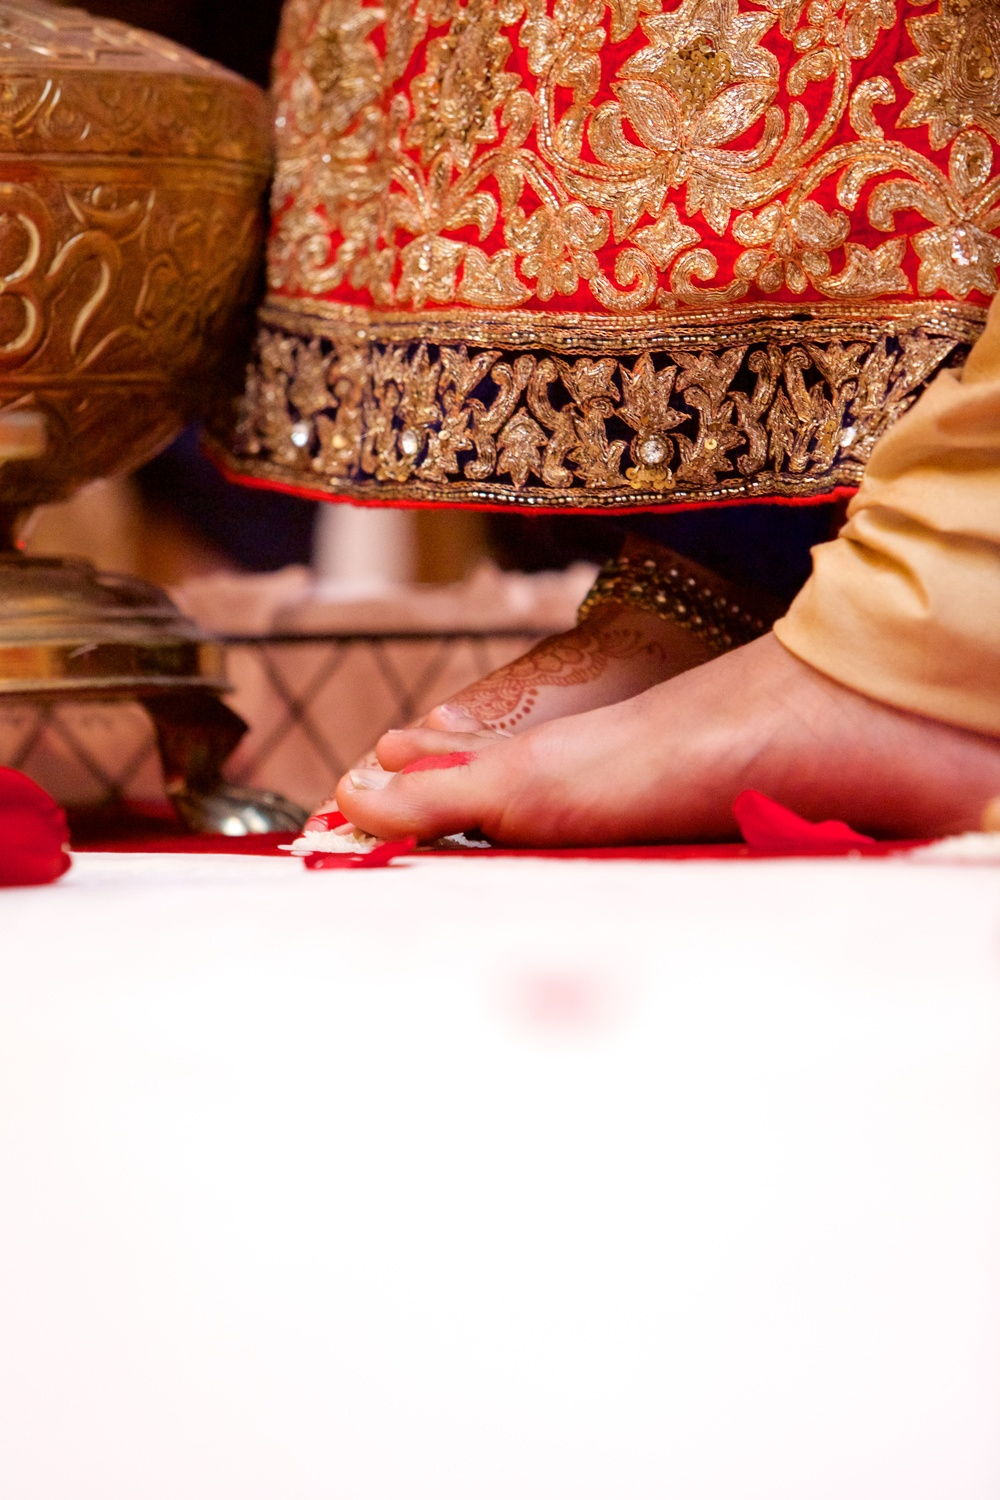 Le Cape Weddings - Indian Wedding - Day 4 - Megan and Karthik Ceremony  68.jpg